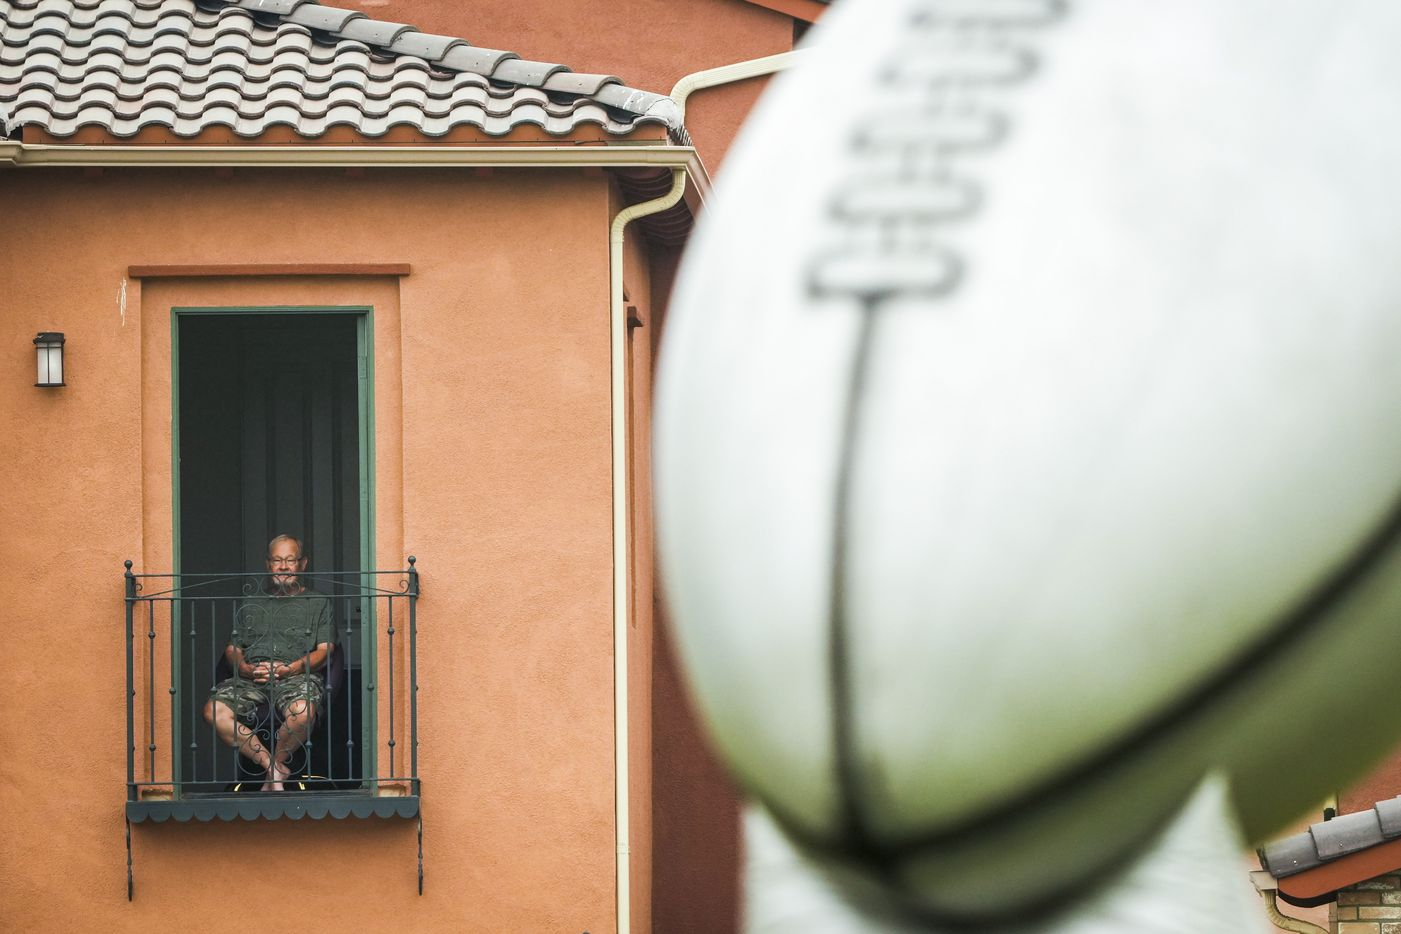 A man watches the Dallas Cowboys opening ceremonies from the balcony of a home adjacent to the facility before a practice at training camp on Saturday, July 24, 2021, in Oxnard, Calif.